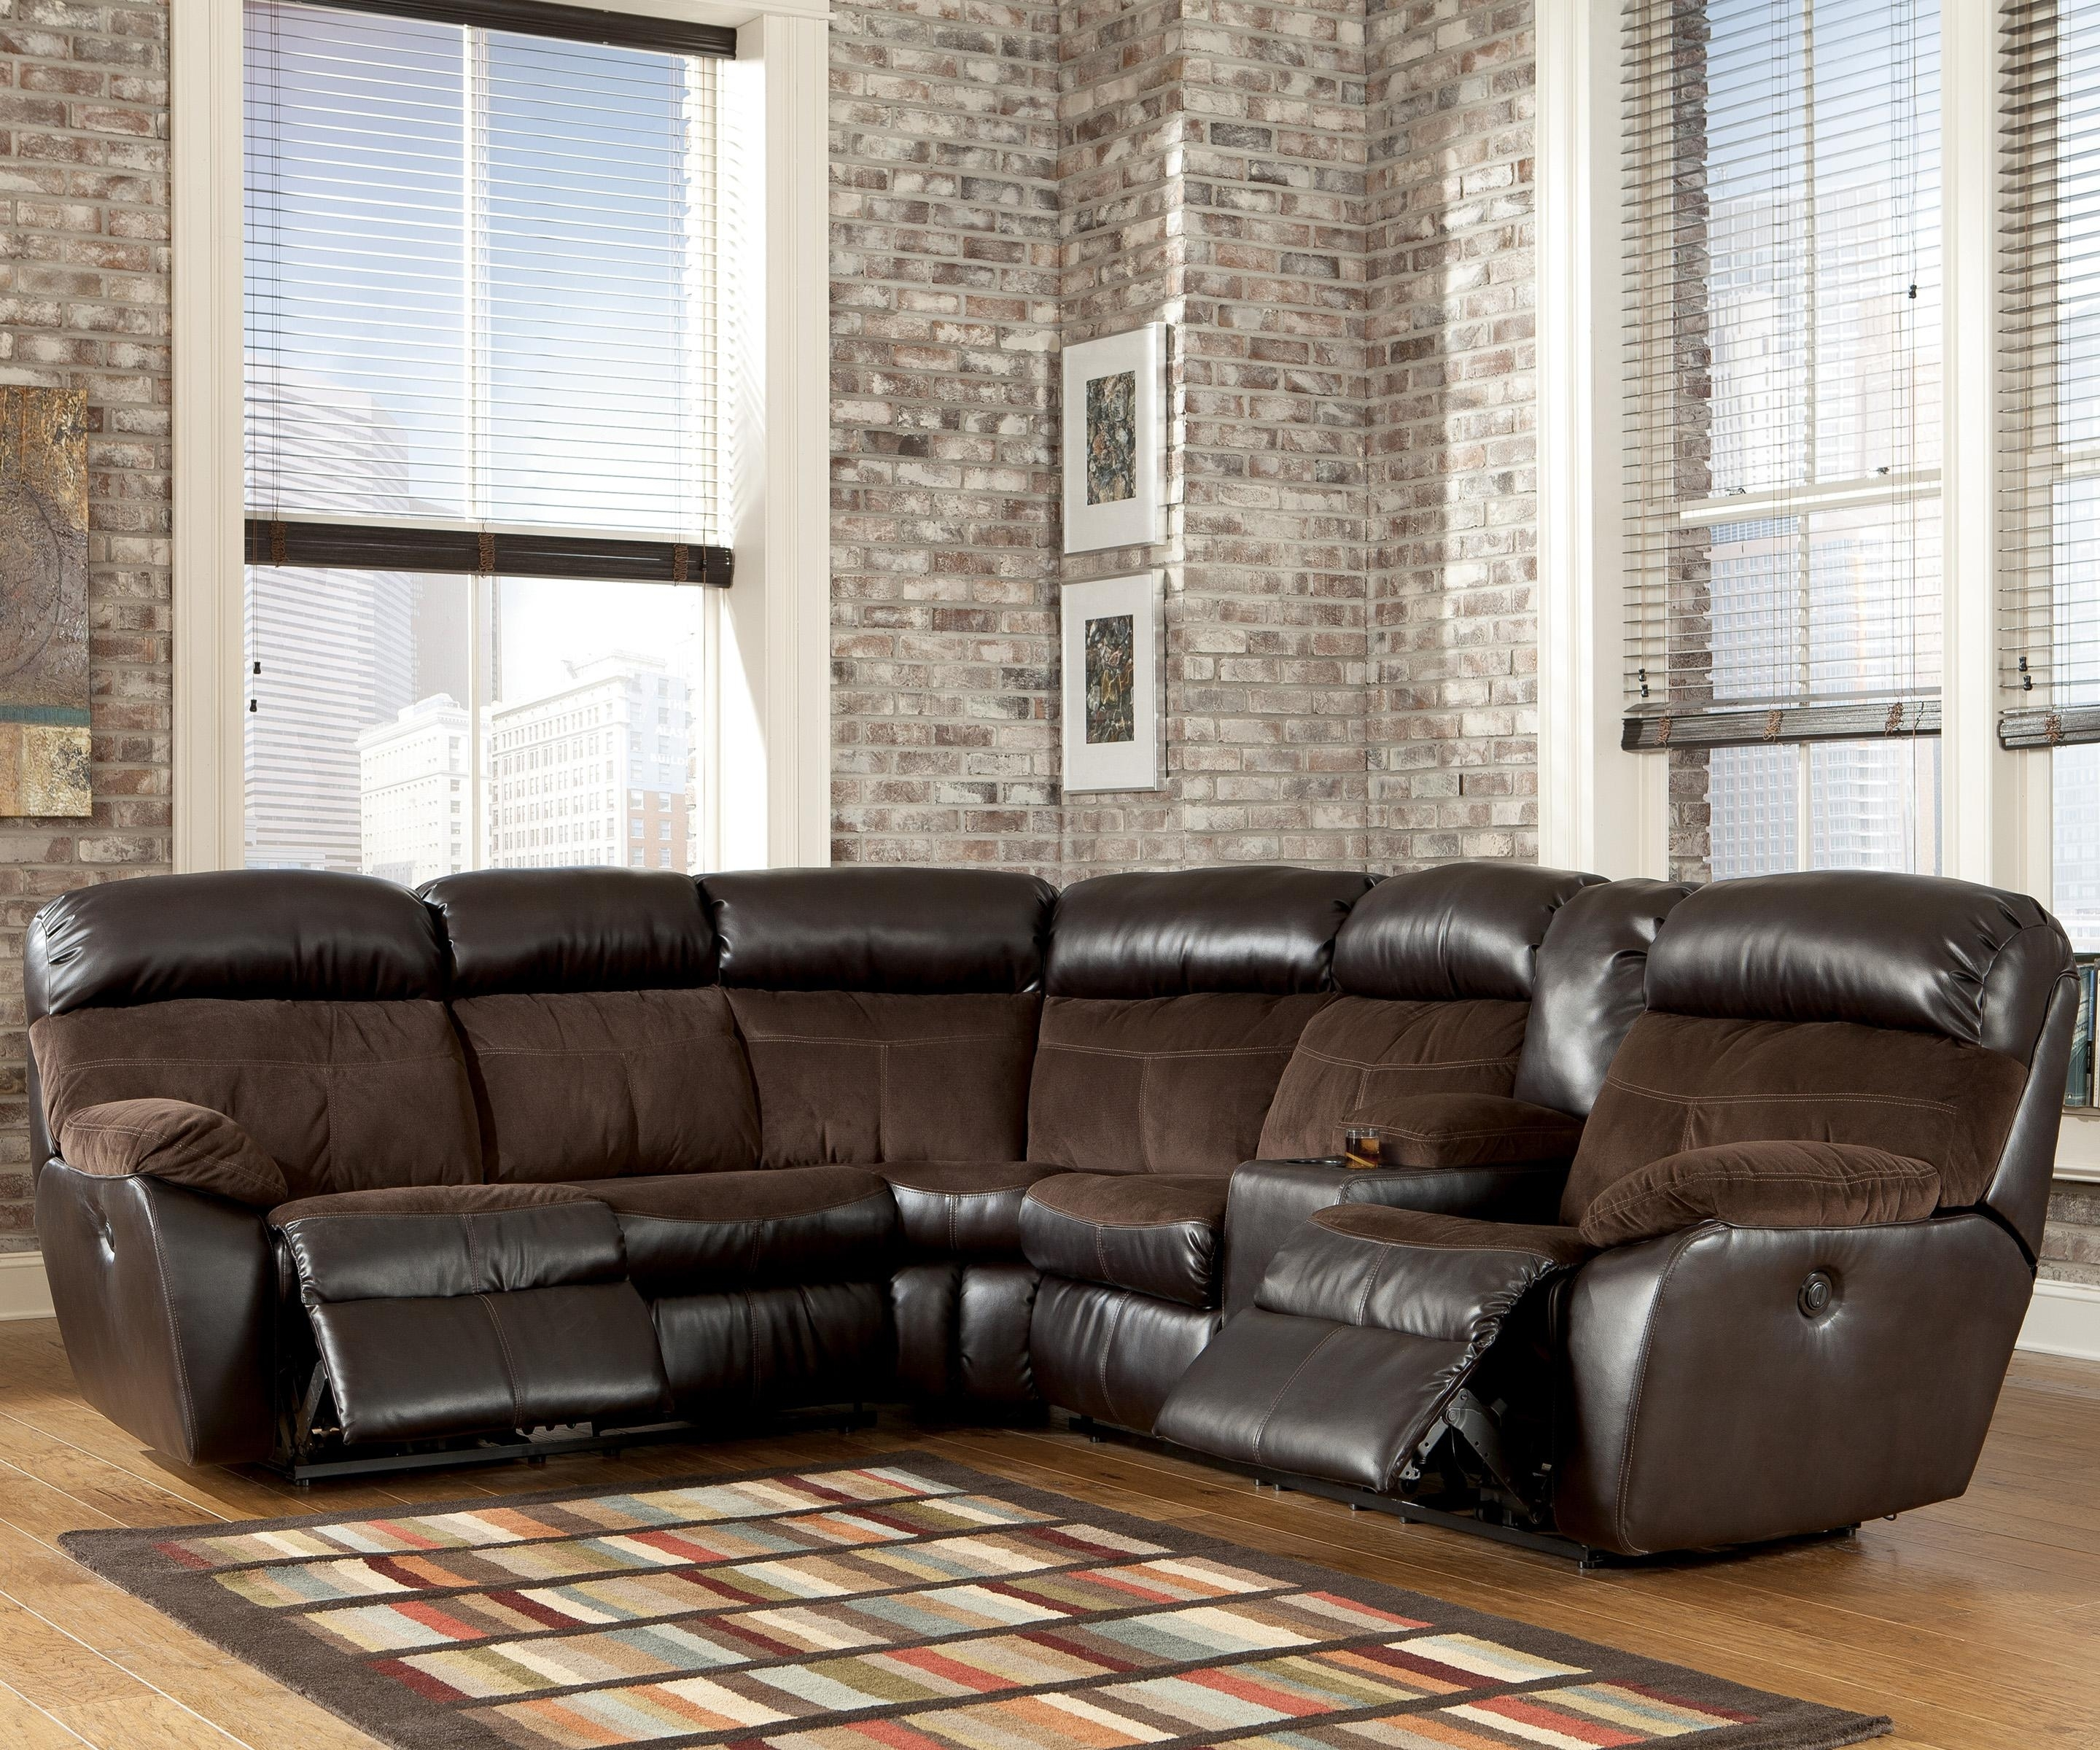 Sofas Black Leather Sectional Piece Sofa Sleeper Blue Reclining With regarding Jackson 6 Piece Power Reclining Sectionals With  Sleeper (Image 28 of 30)